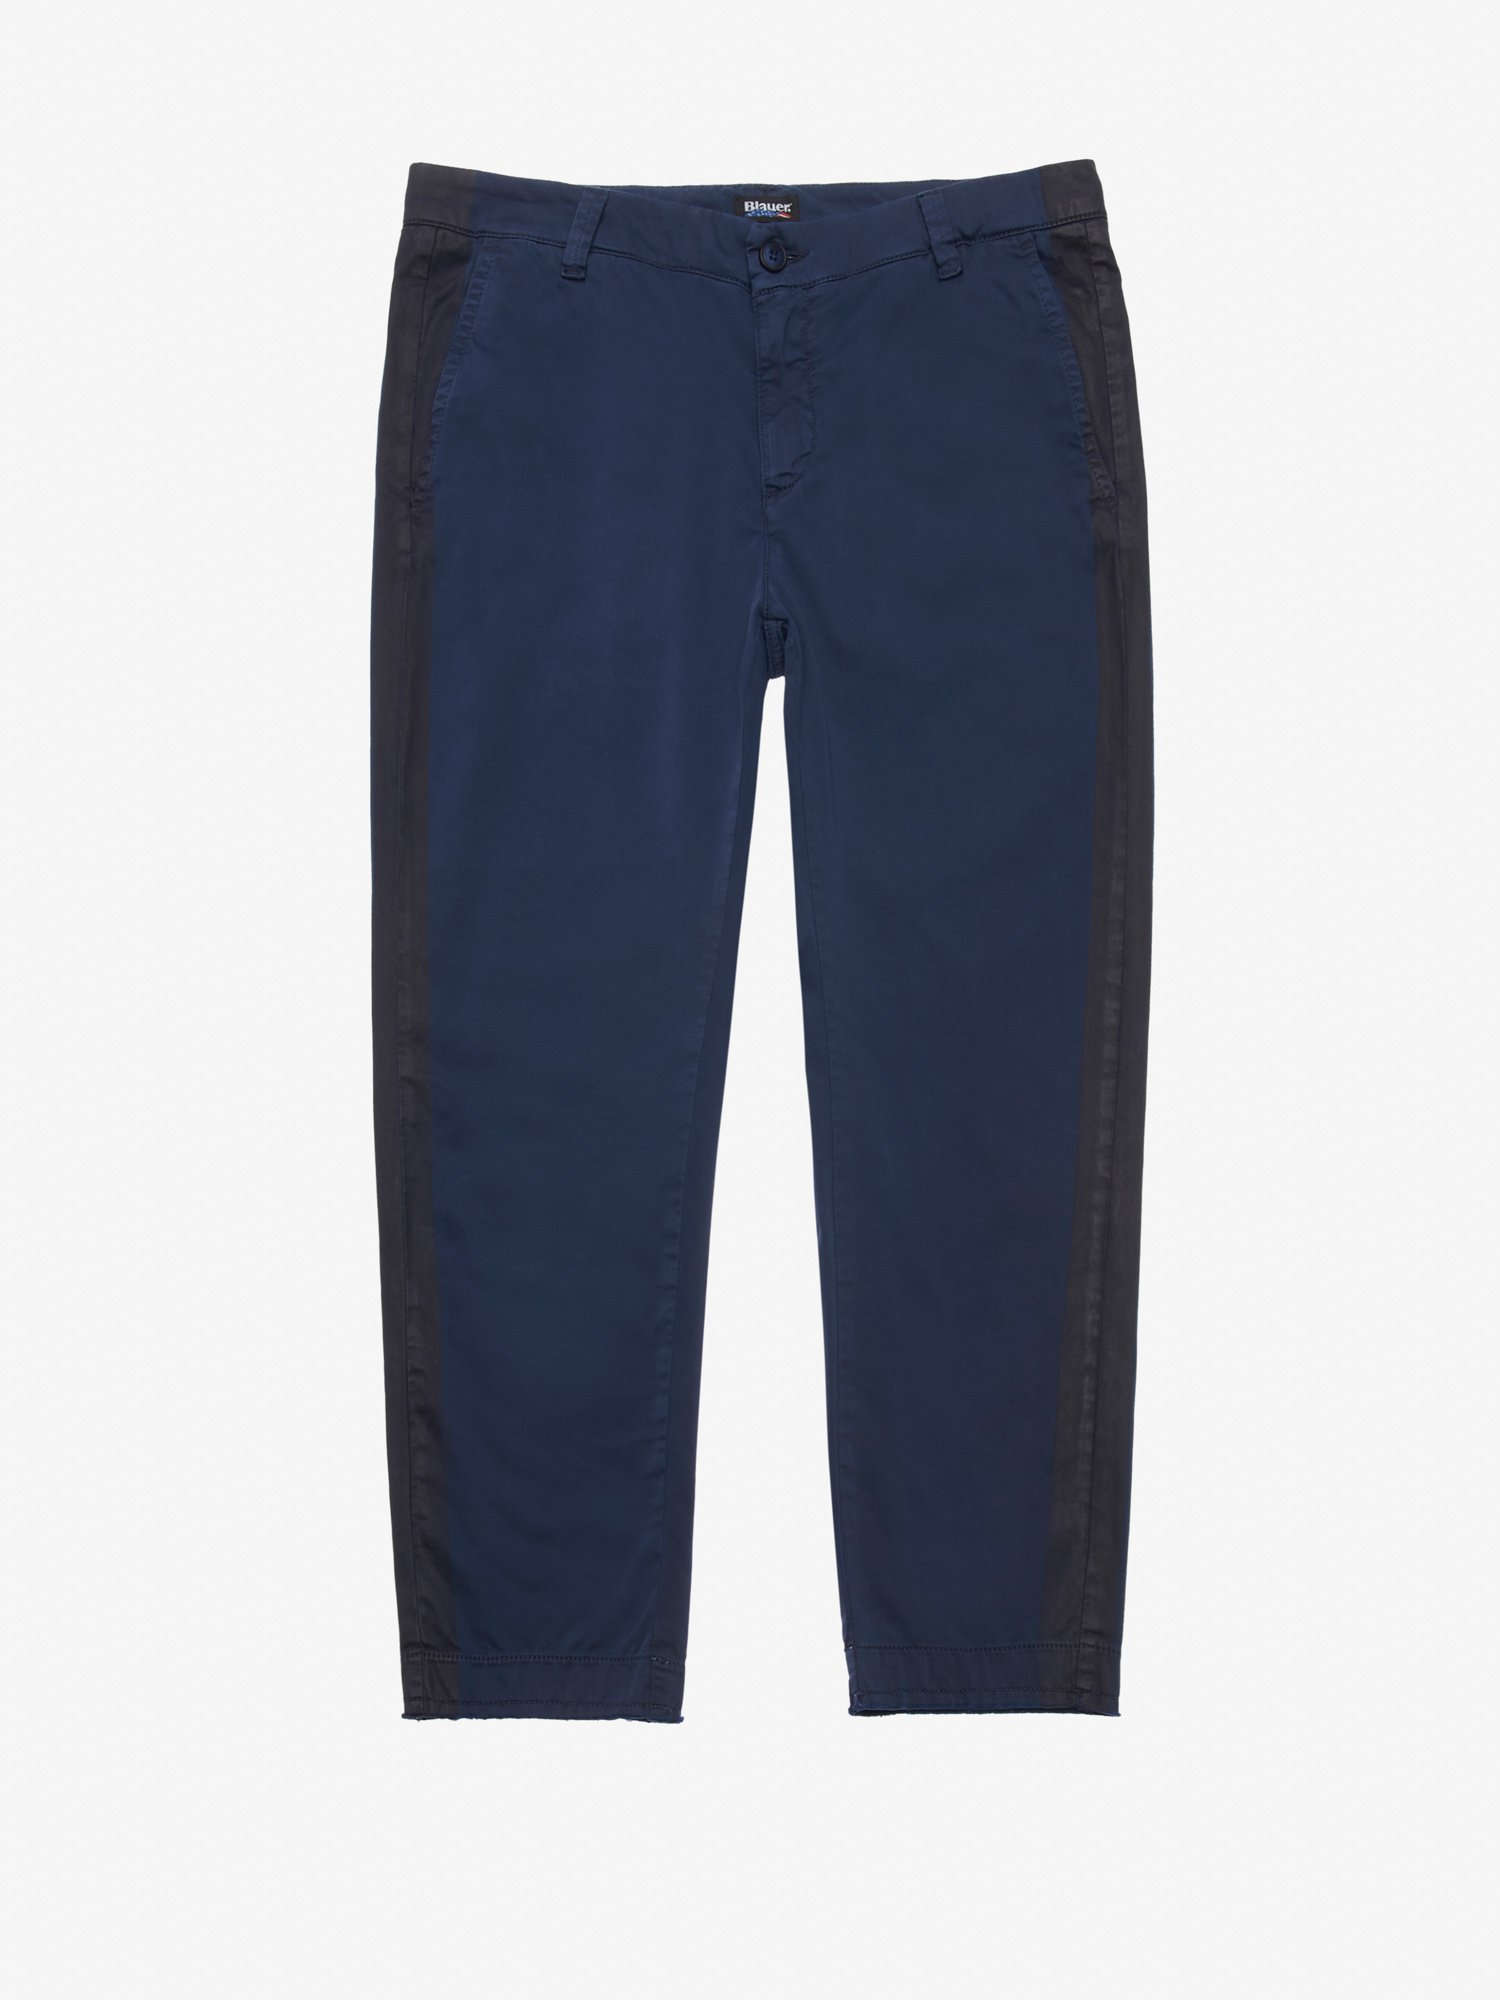 Blauer - PANTALÓN SATÉN STRETCH - Blue Ink - Blauer